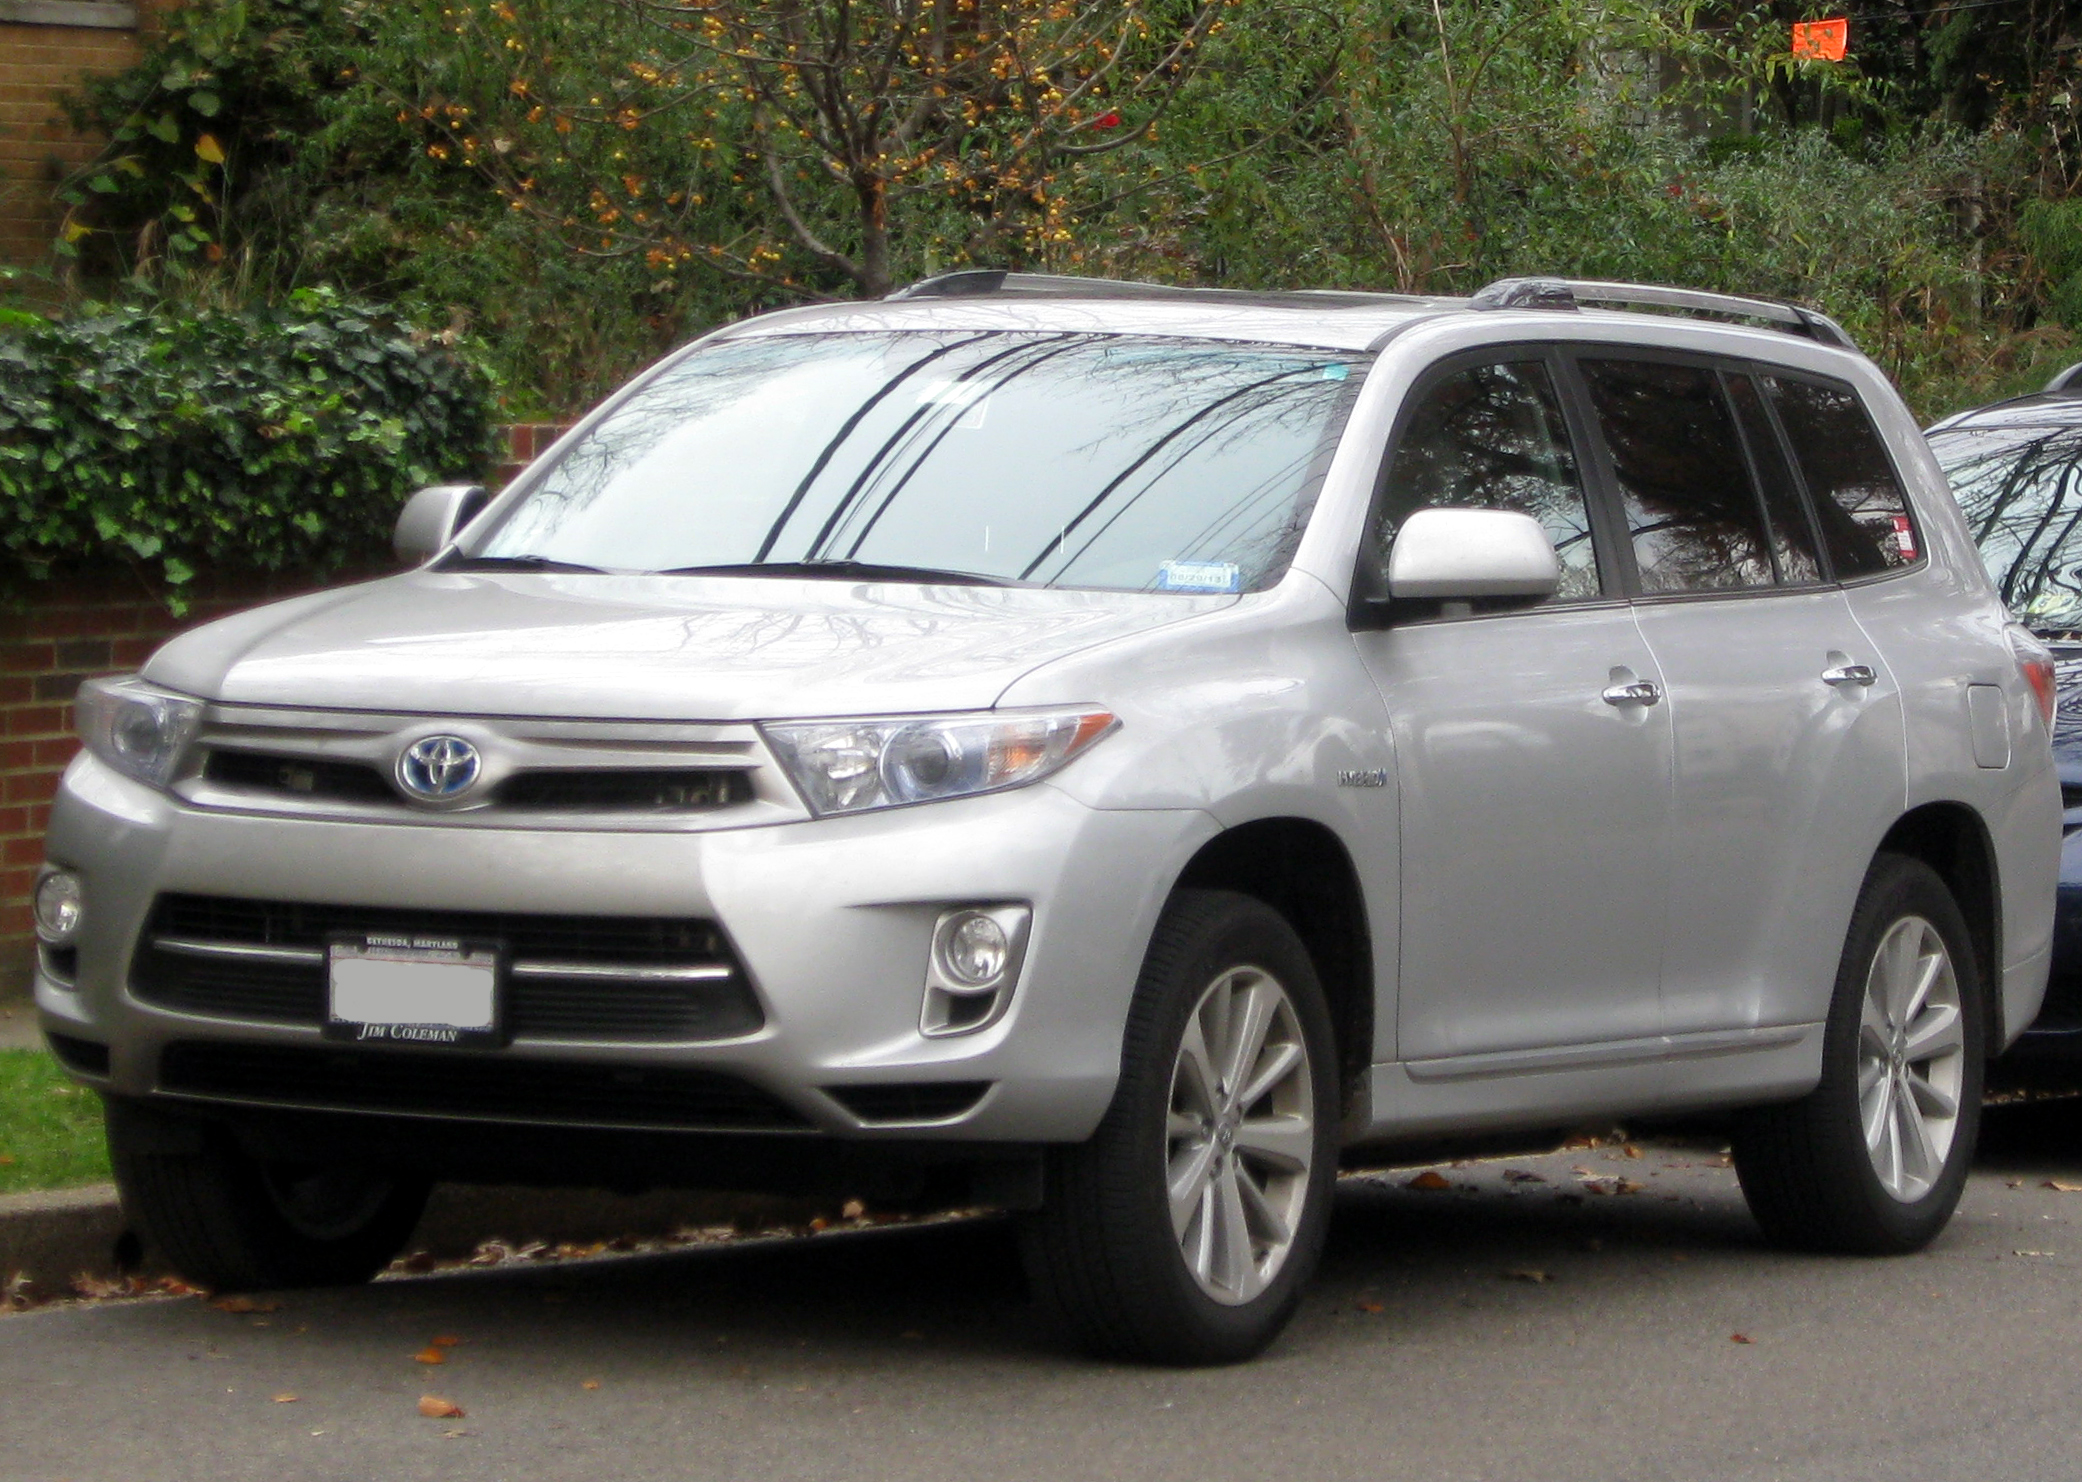 file 2011 toyota highlander hybrid limited 11 20 2011 wikimedia commons. Black Bedroom Furniture Sets. Home Design Ideas